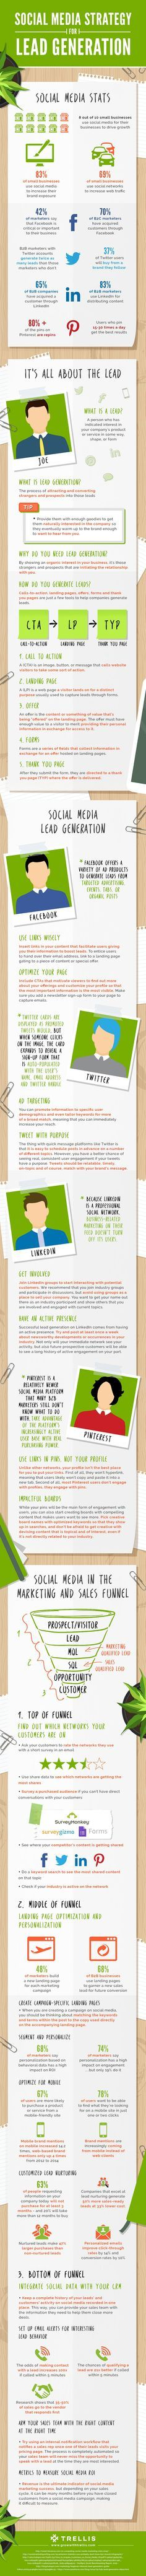 Social Media Marketing Strategy for Lead Generation [Infographic]